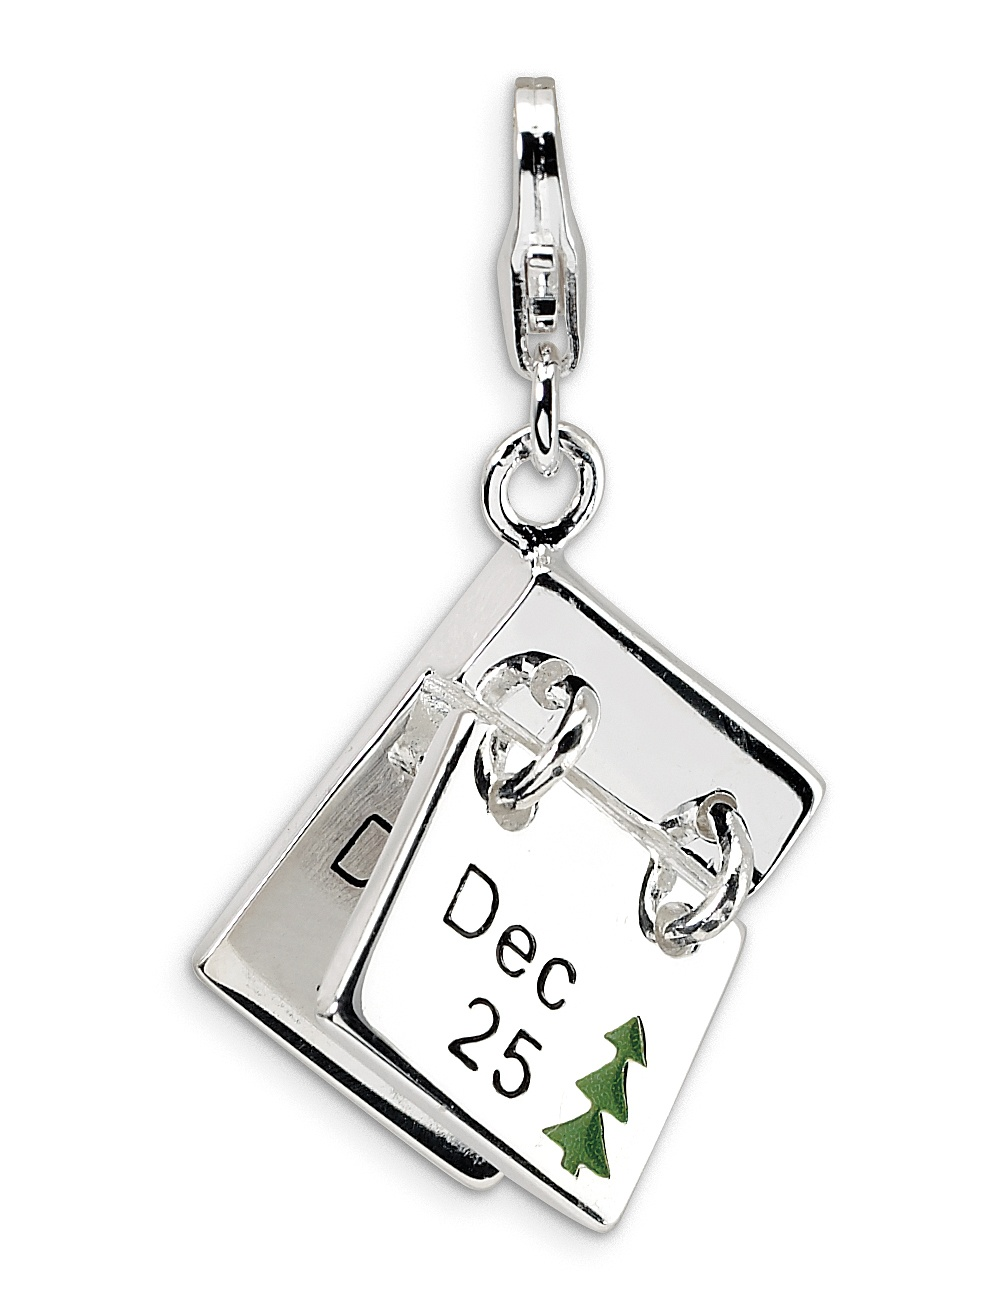 Sterling Silver Rhodium Plated 3-D Enameled Black Handbag with Lobster Clasp Charm 0.9IN long x 0.7IN wide